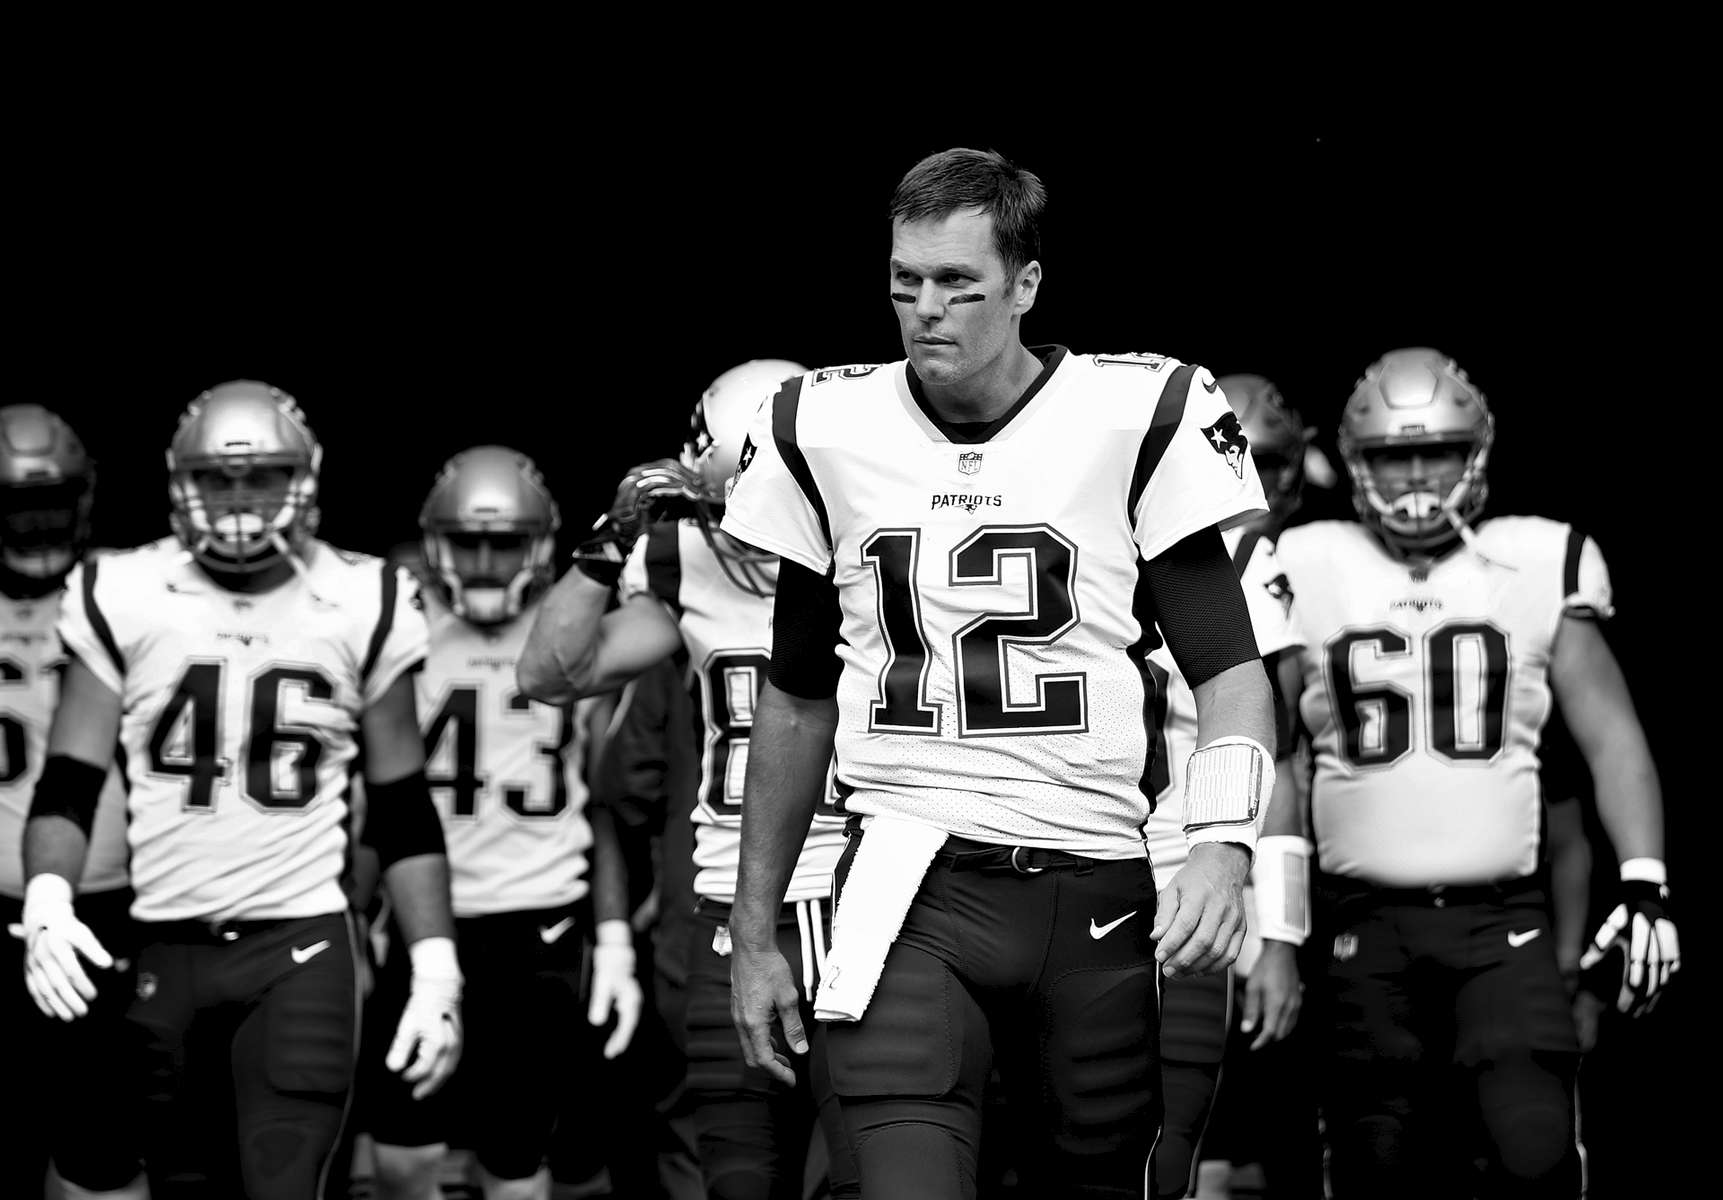 Tom Brady #12 of the New England Patriots leads his team onto the field against the New York Jets before their game at MetLife Stadium on October 15, 2017 in East Rutherford, New Jersey.